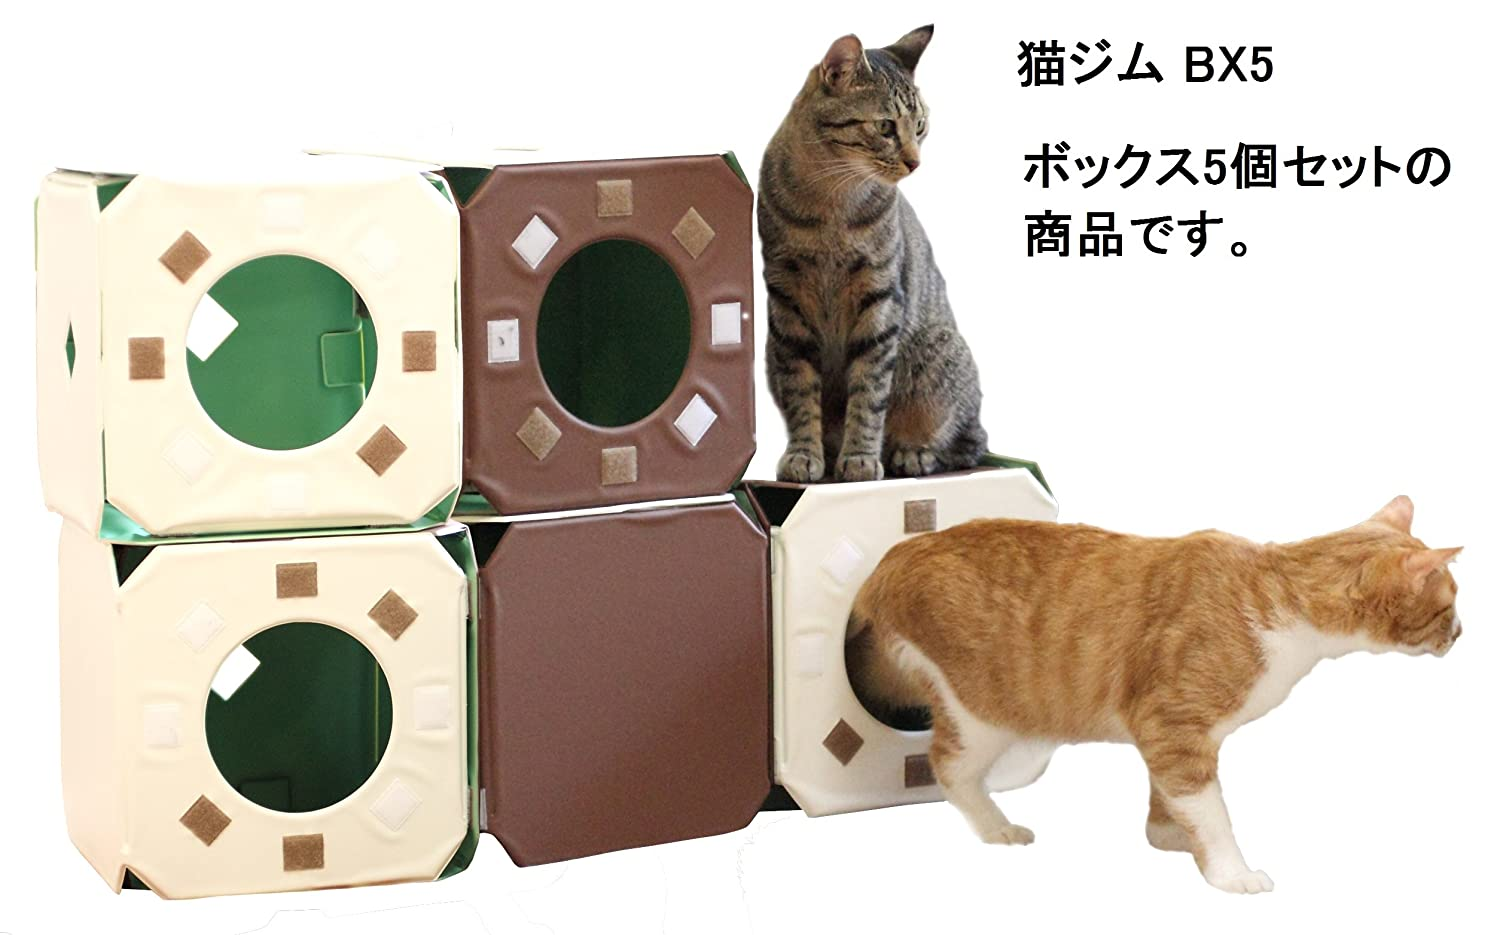 Made in Japan cat gym] box consolidated type three-dimensional multi-shaped cat toys box × 5 pieces